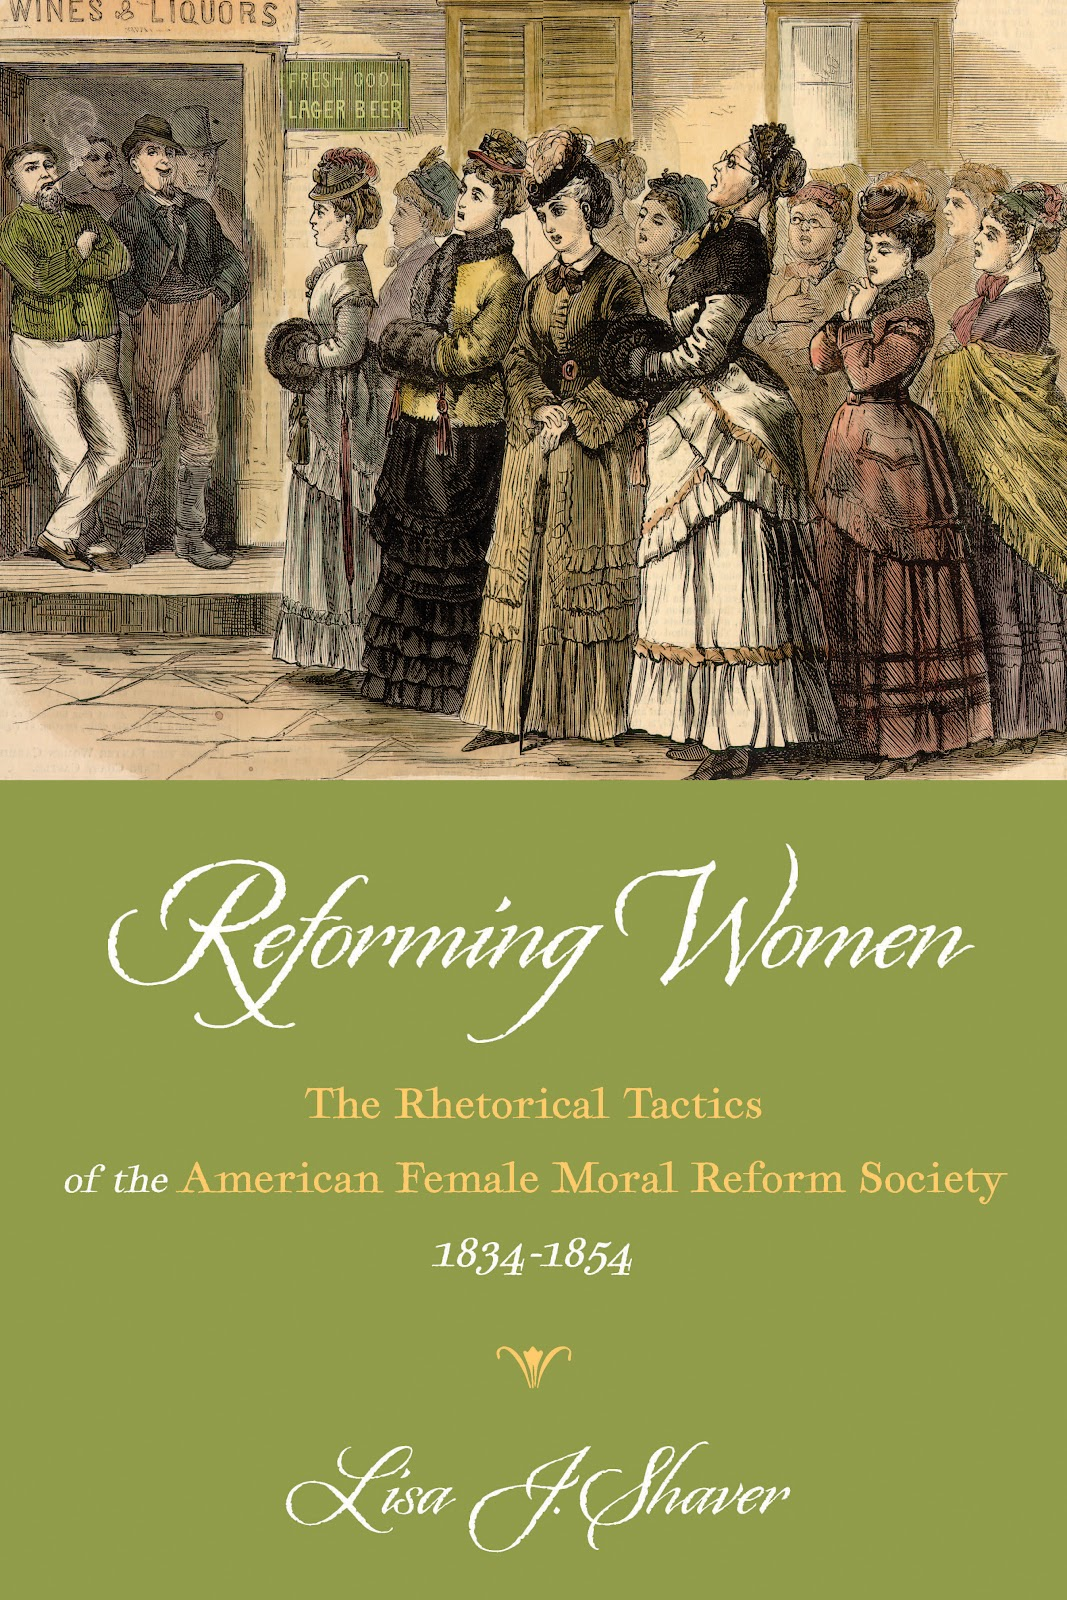 Cover of Shaver's book. The top half features artwork of 1800s women waiting in line outside a wine and liquor store. The bottom half has the title written in decorate white and yellow typeface on a green background.